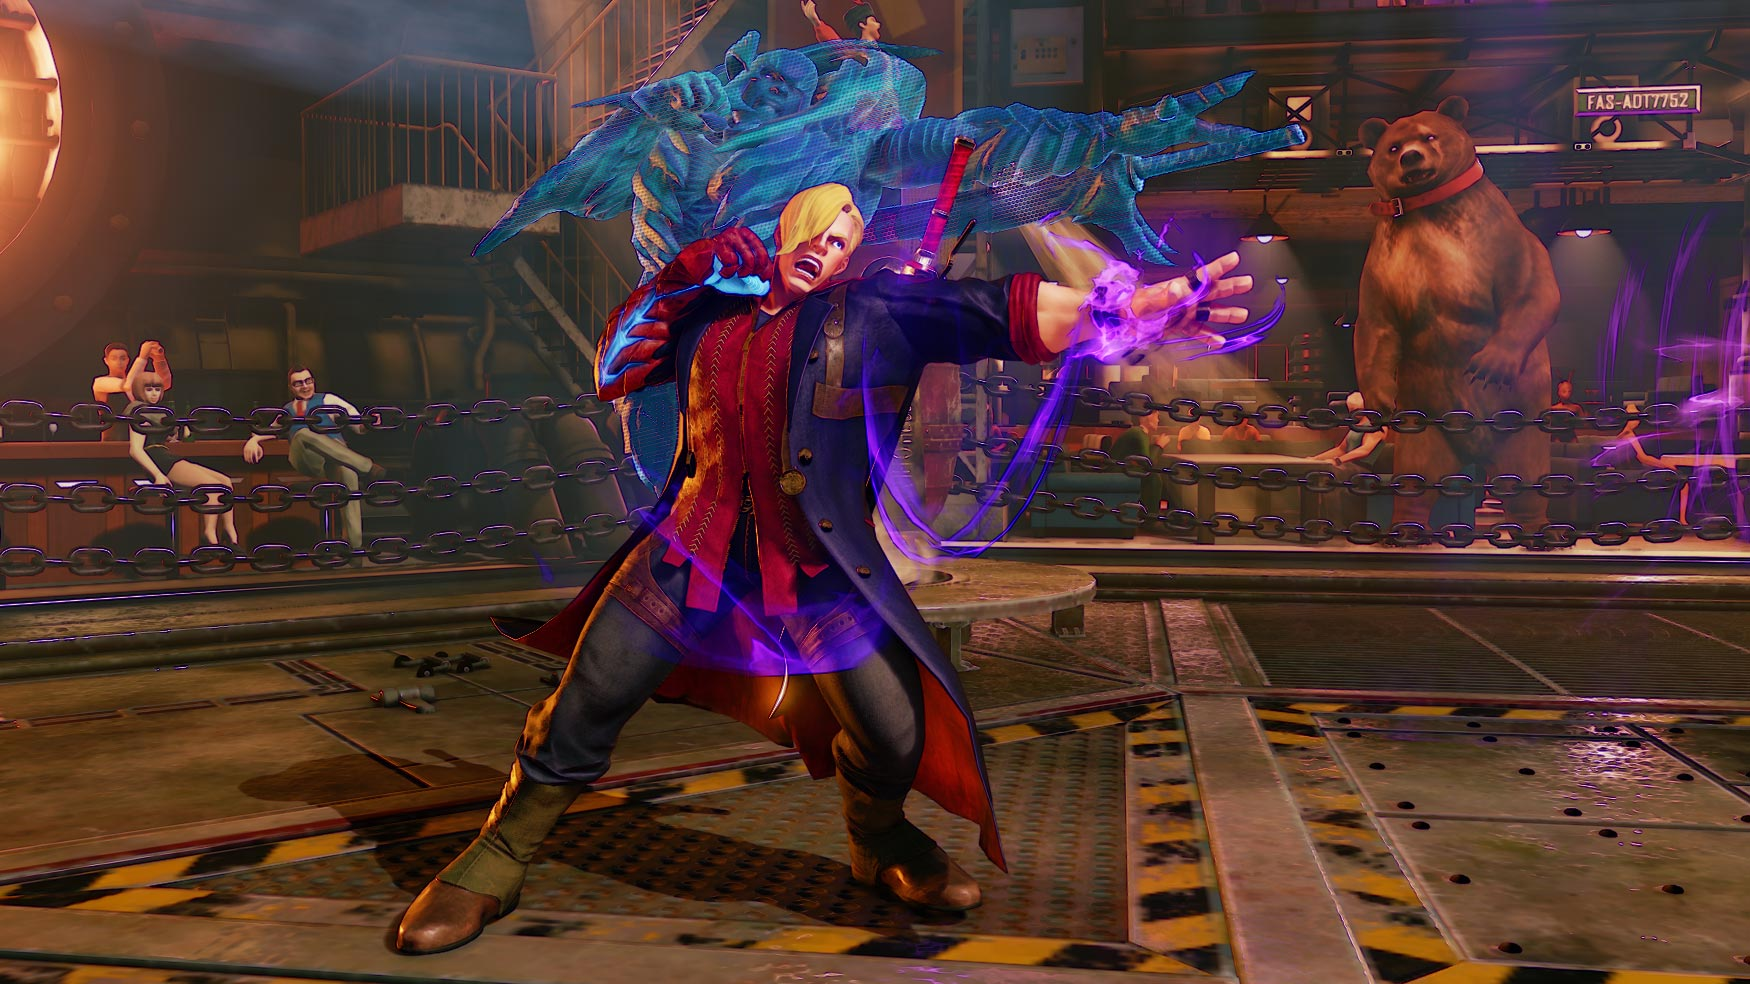 Devil May Cry, Air Man costumes, Survival mode changes in Street Fighter 5 3 out of 14 image gallery